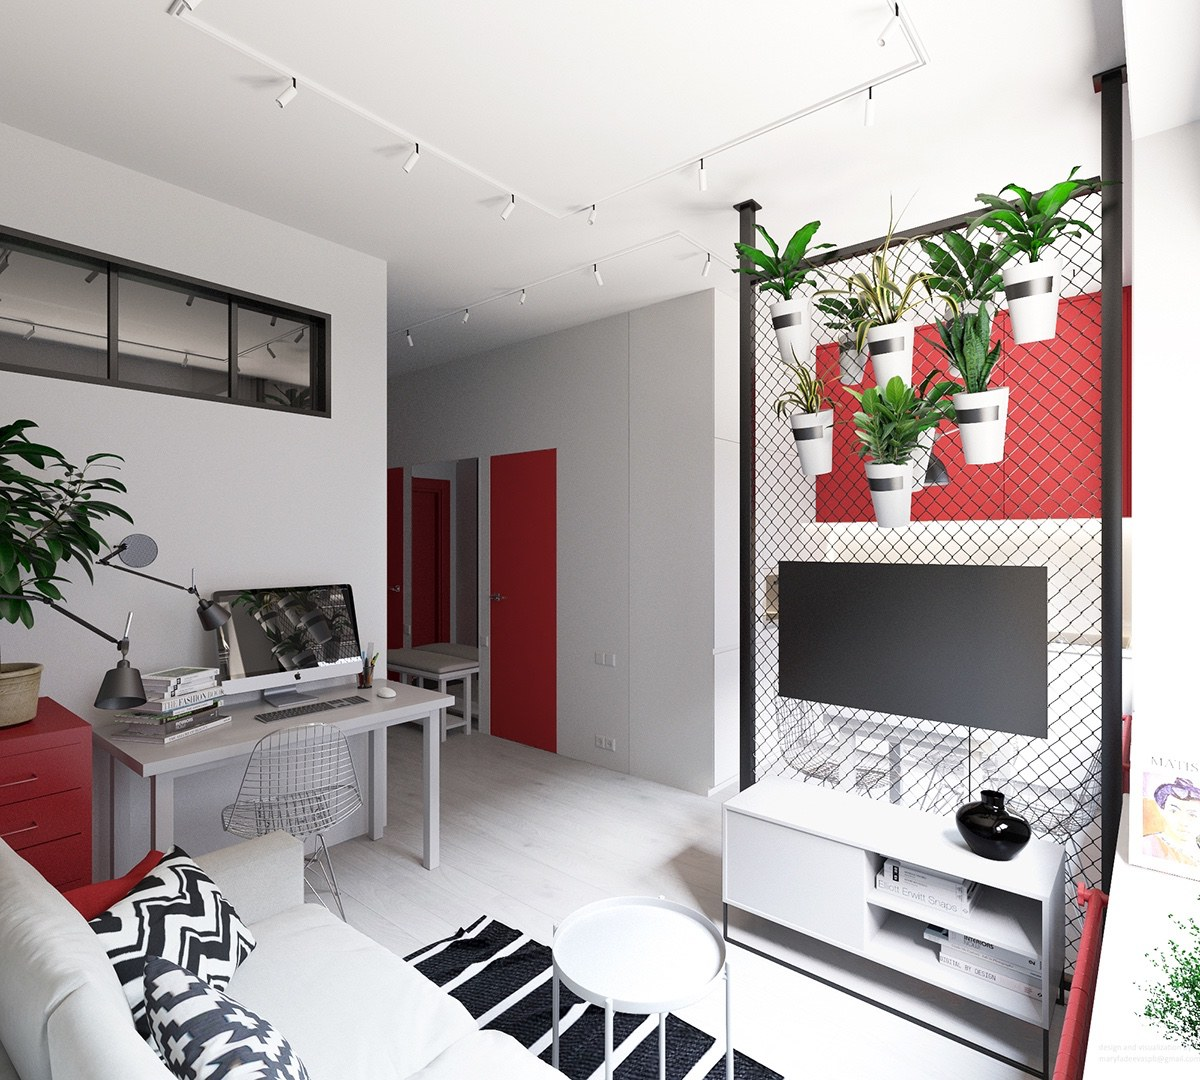 The Flat Apartments: Applying These 3 Small Apartment Designs With A Beautiful